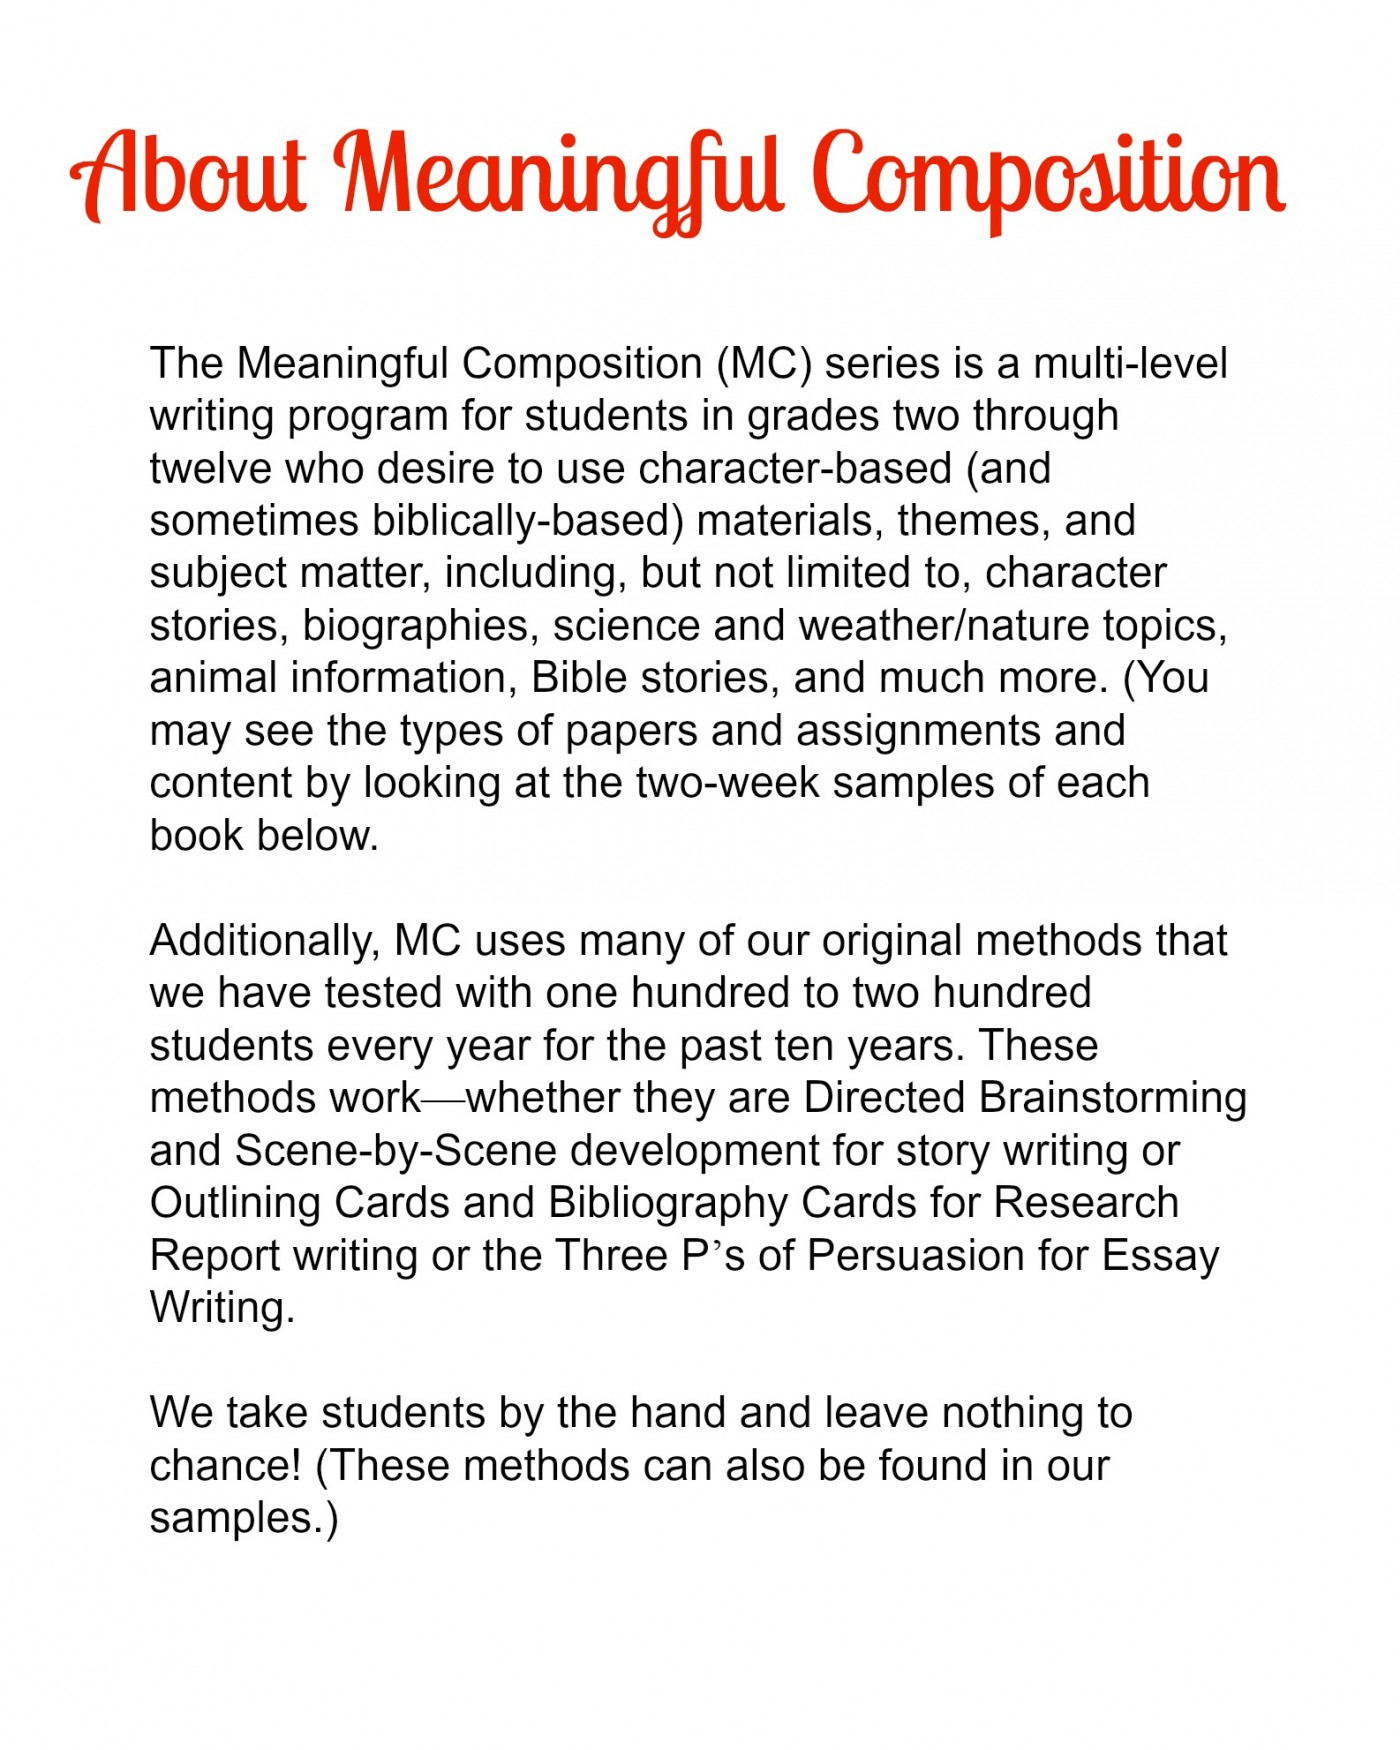 022 Examples Of Persuasive Essays Expository Essay Introductions Creative Writing Course Paragraph On Bullying About Meaningful Compos Cyber How To Prevent Five Excellent For Fifth Graders Written By 5th 3rd Grade 1400